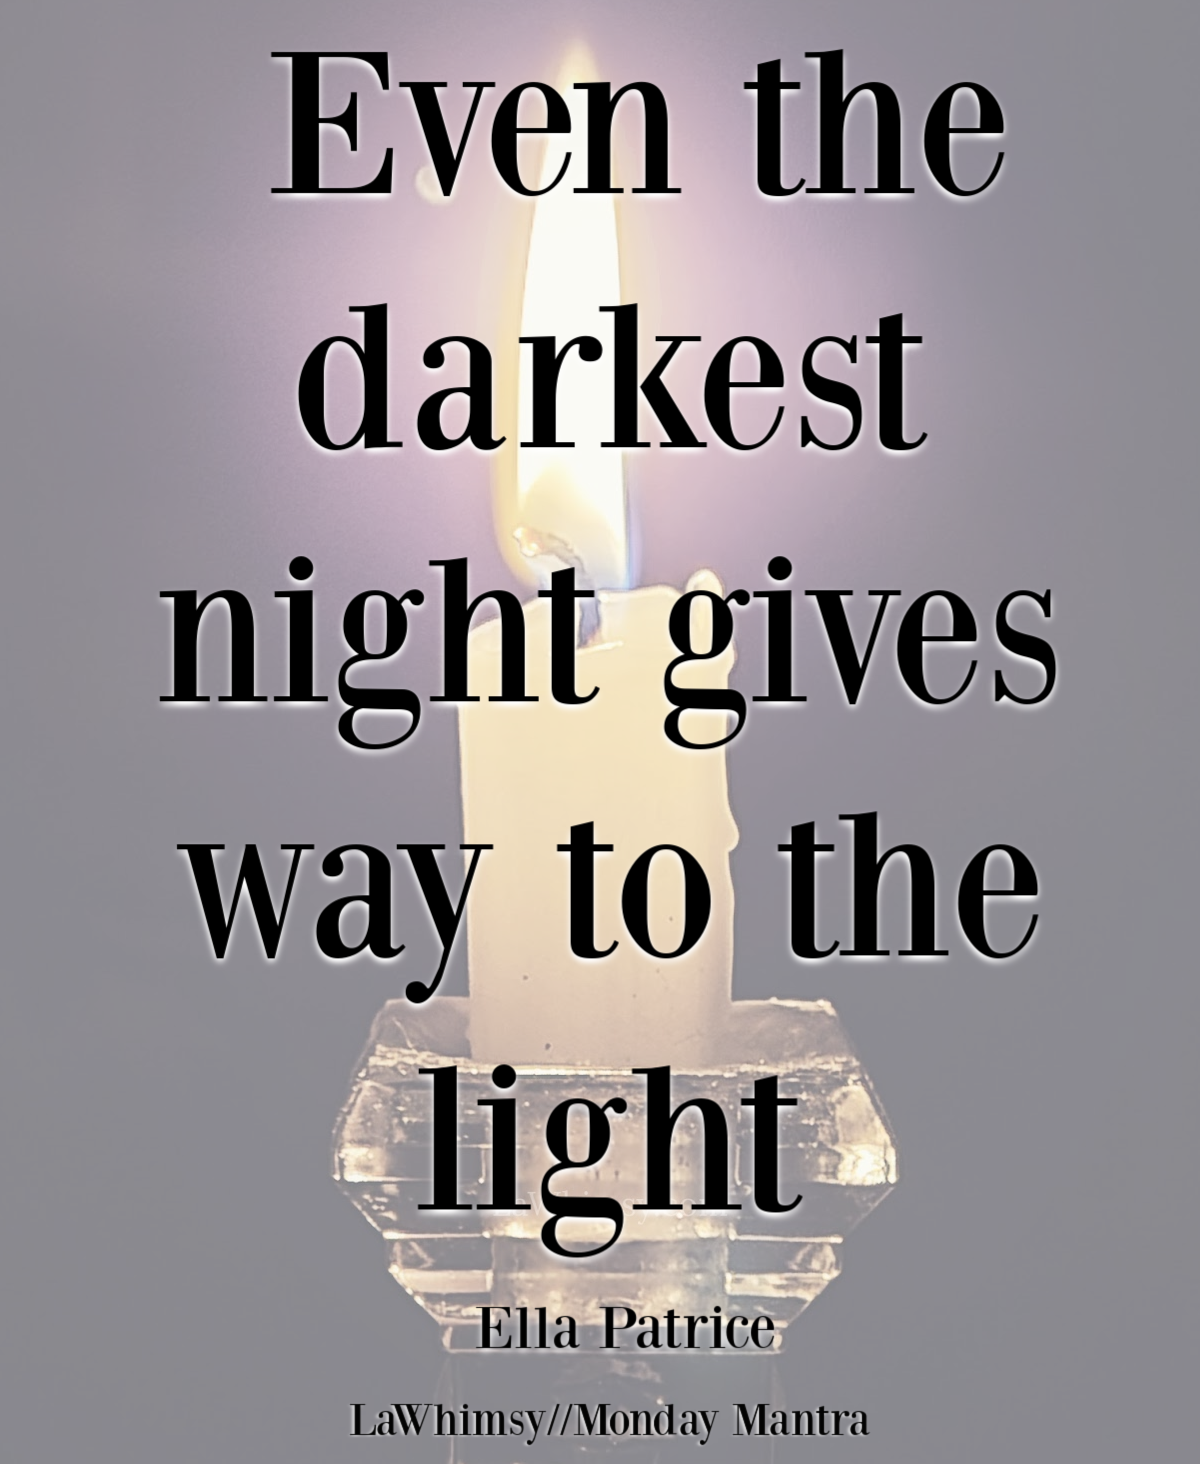 Even the darkest night gives way to the light Ella Patrice quote Monday Mantra 288 via LaWhimsy